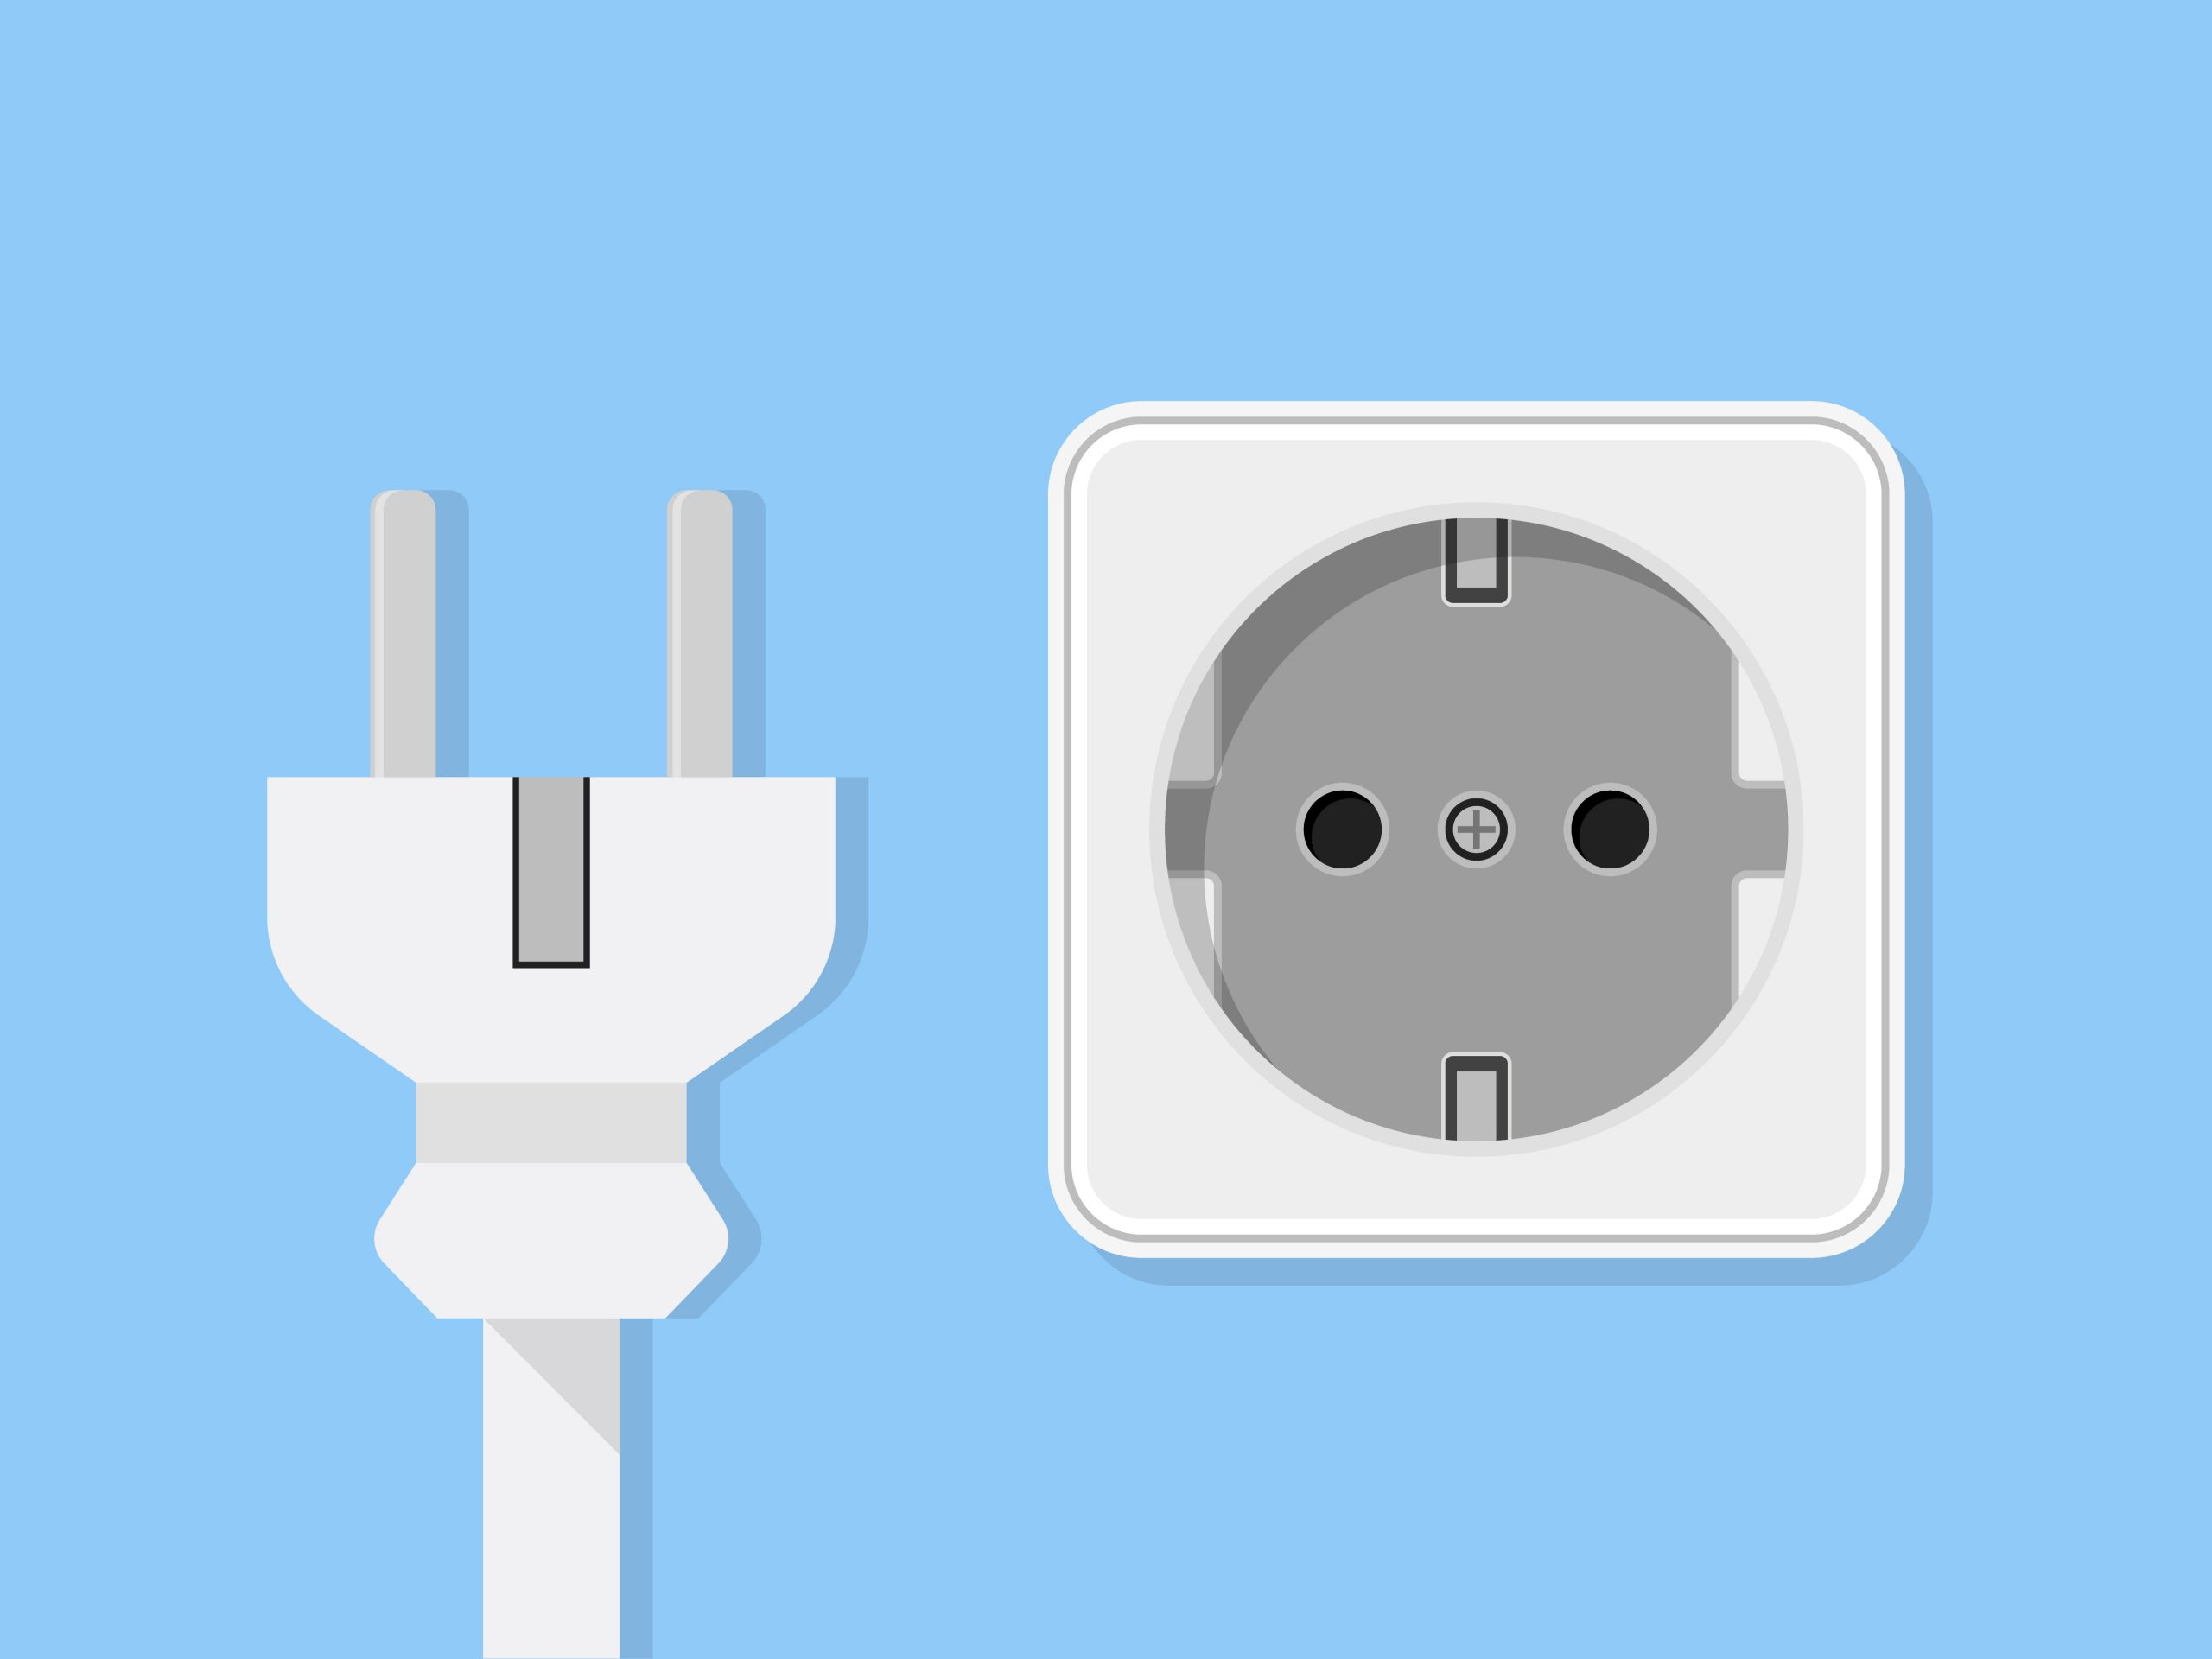 electrical plug to depict unplugging appliances to save energy